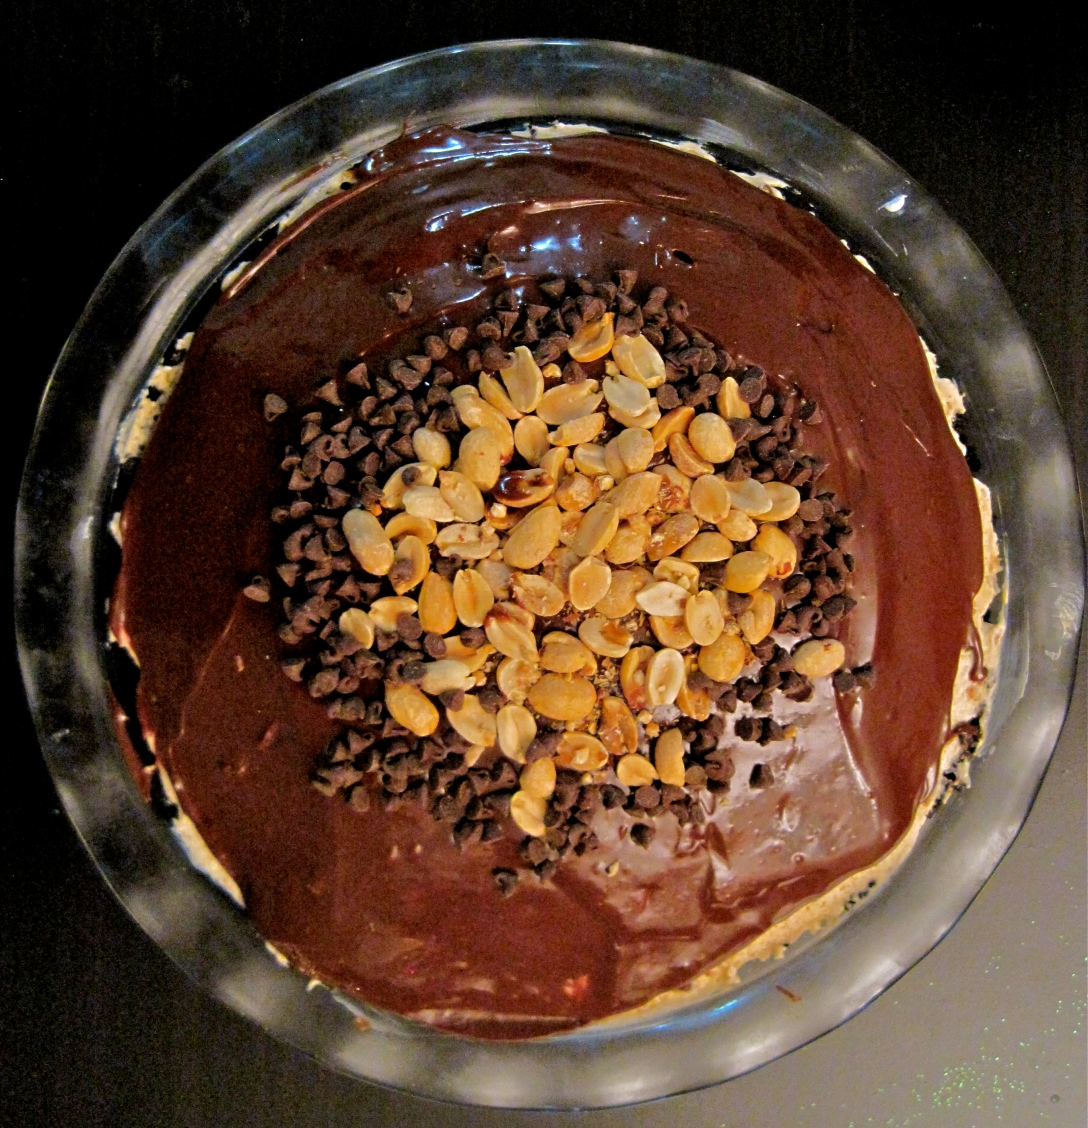 Chocolate and Peanut Butter Mousse Pie